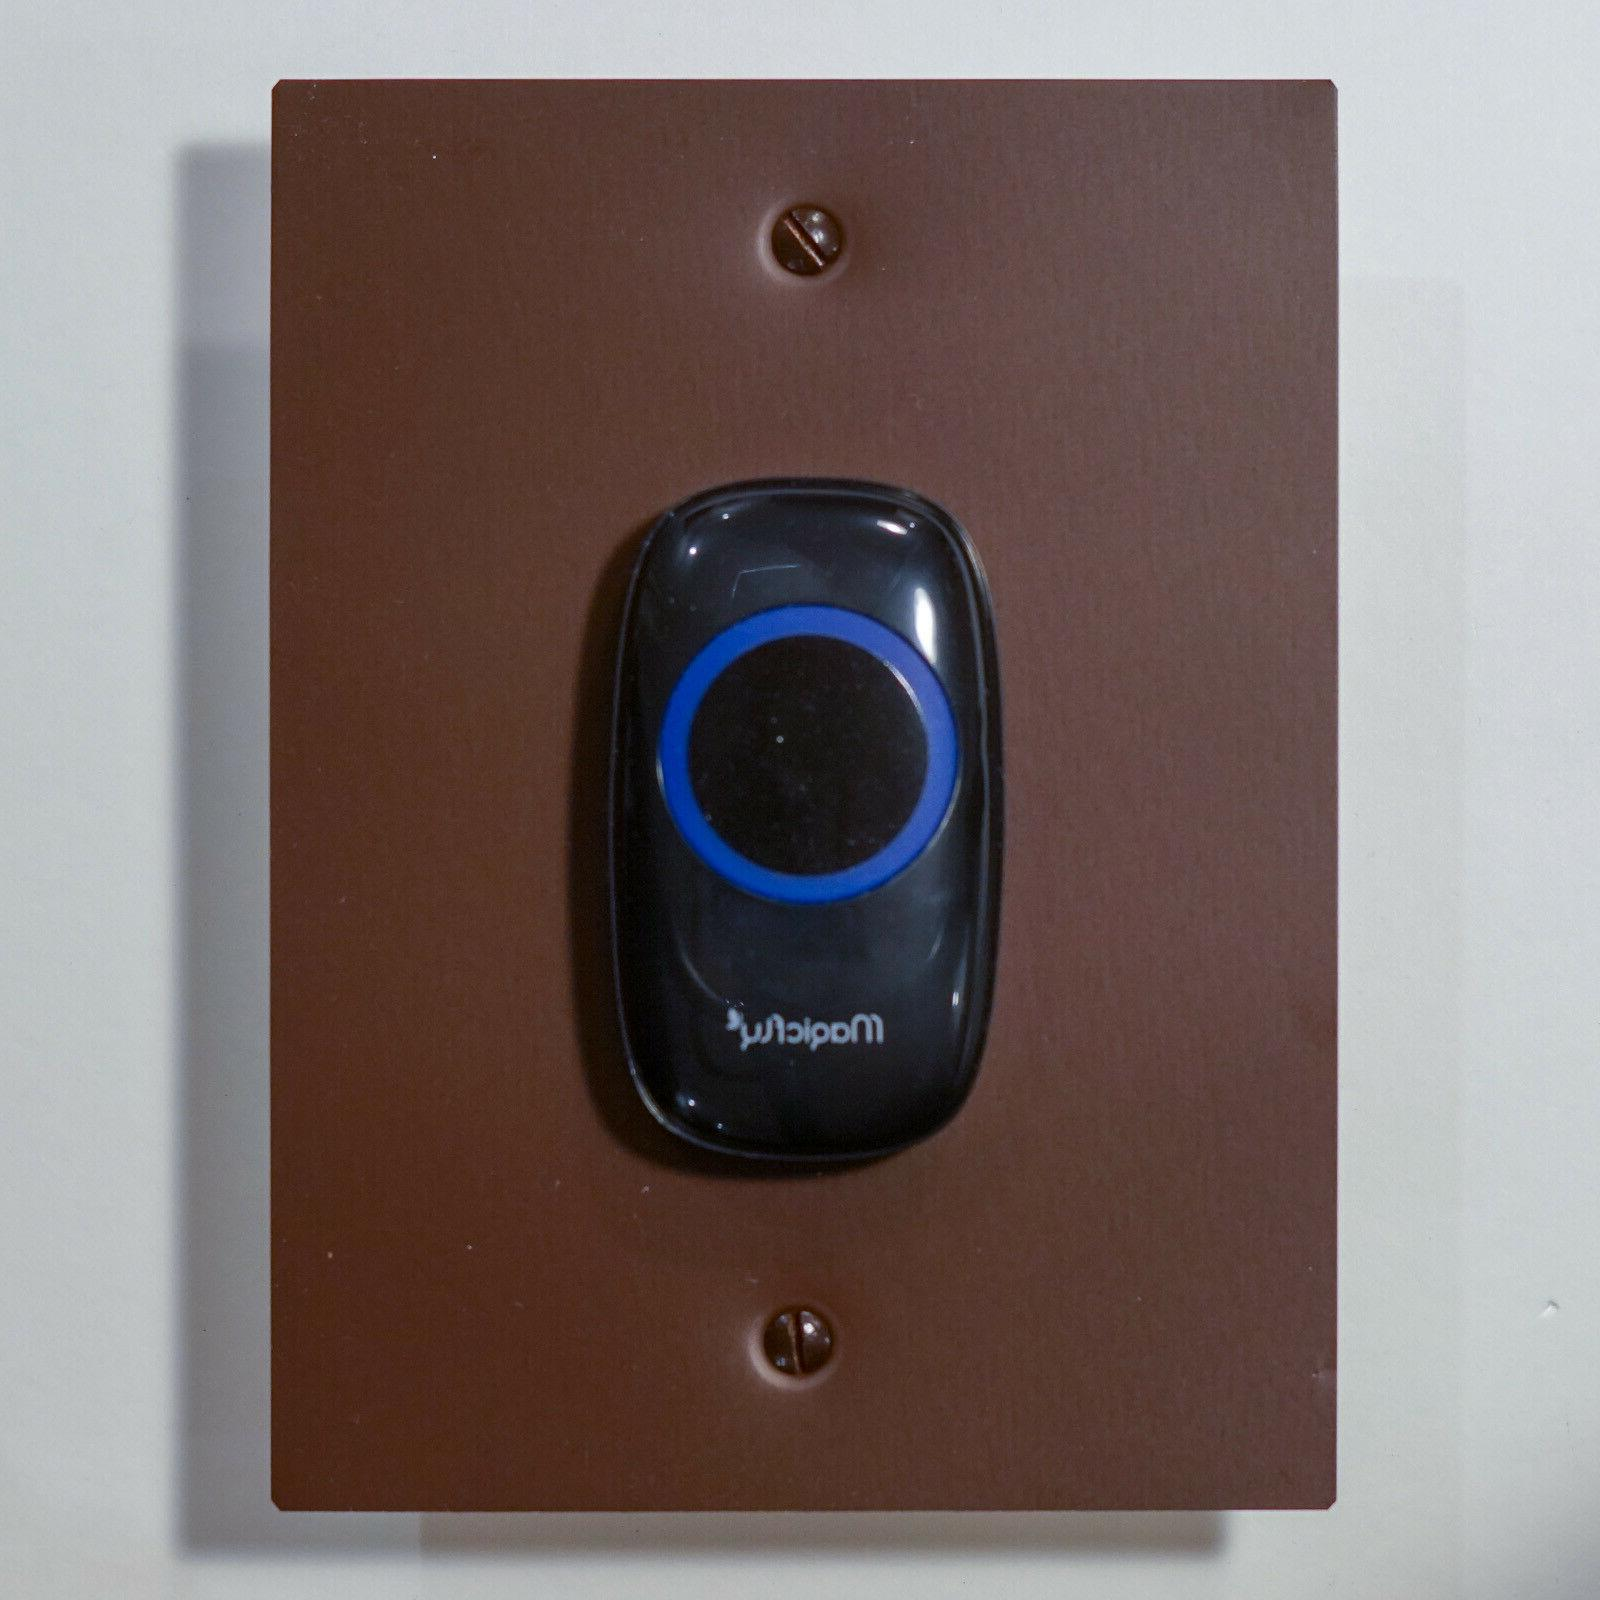 Aluminum Installation Adapter for the MagicFly Doorbell, Colors